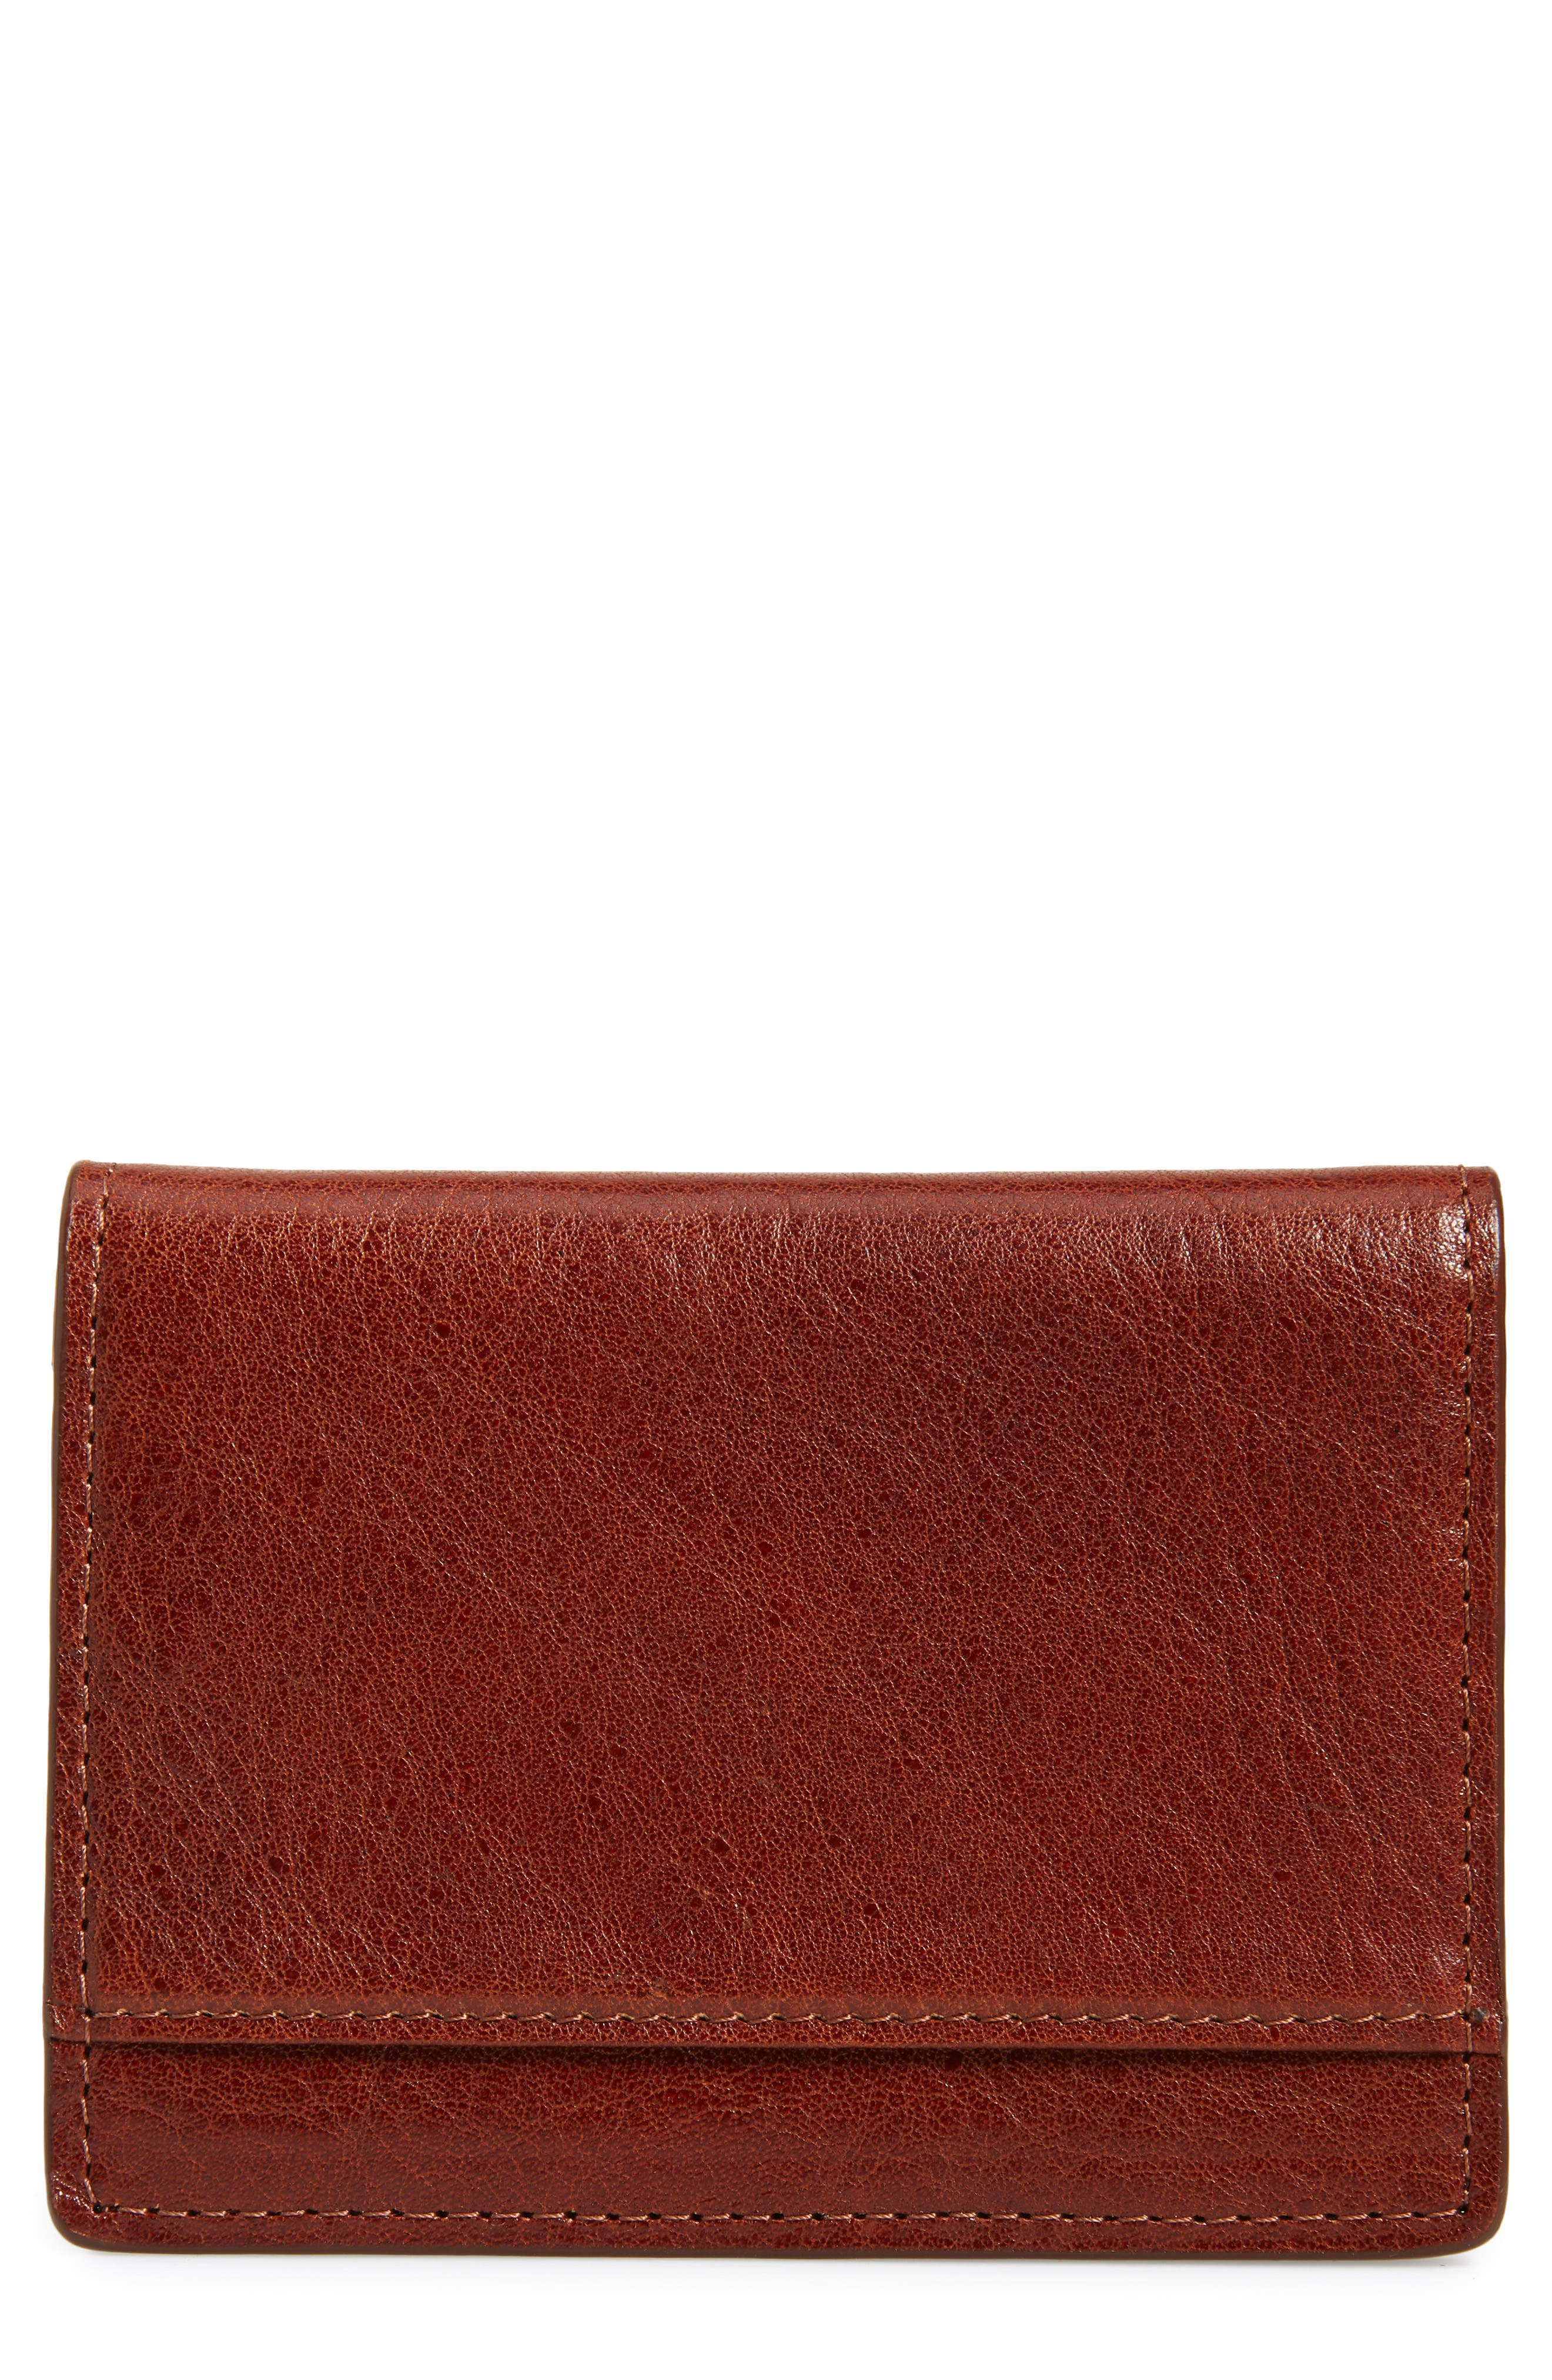 Richmond Leather Wallet,                         Main,                         color, BROWN HENNA